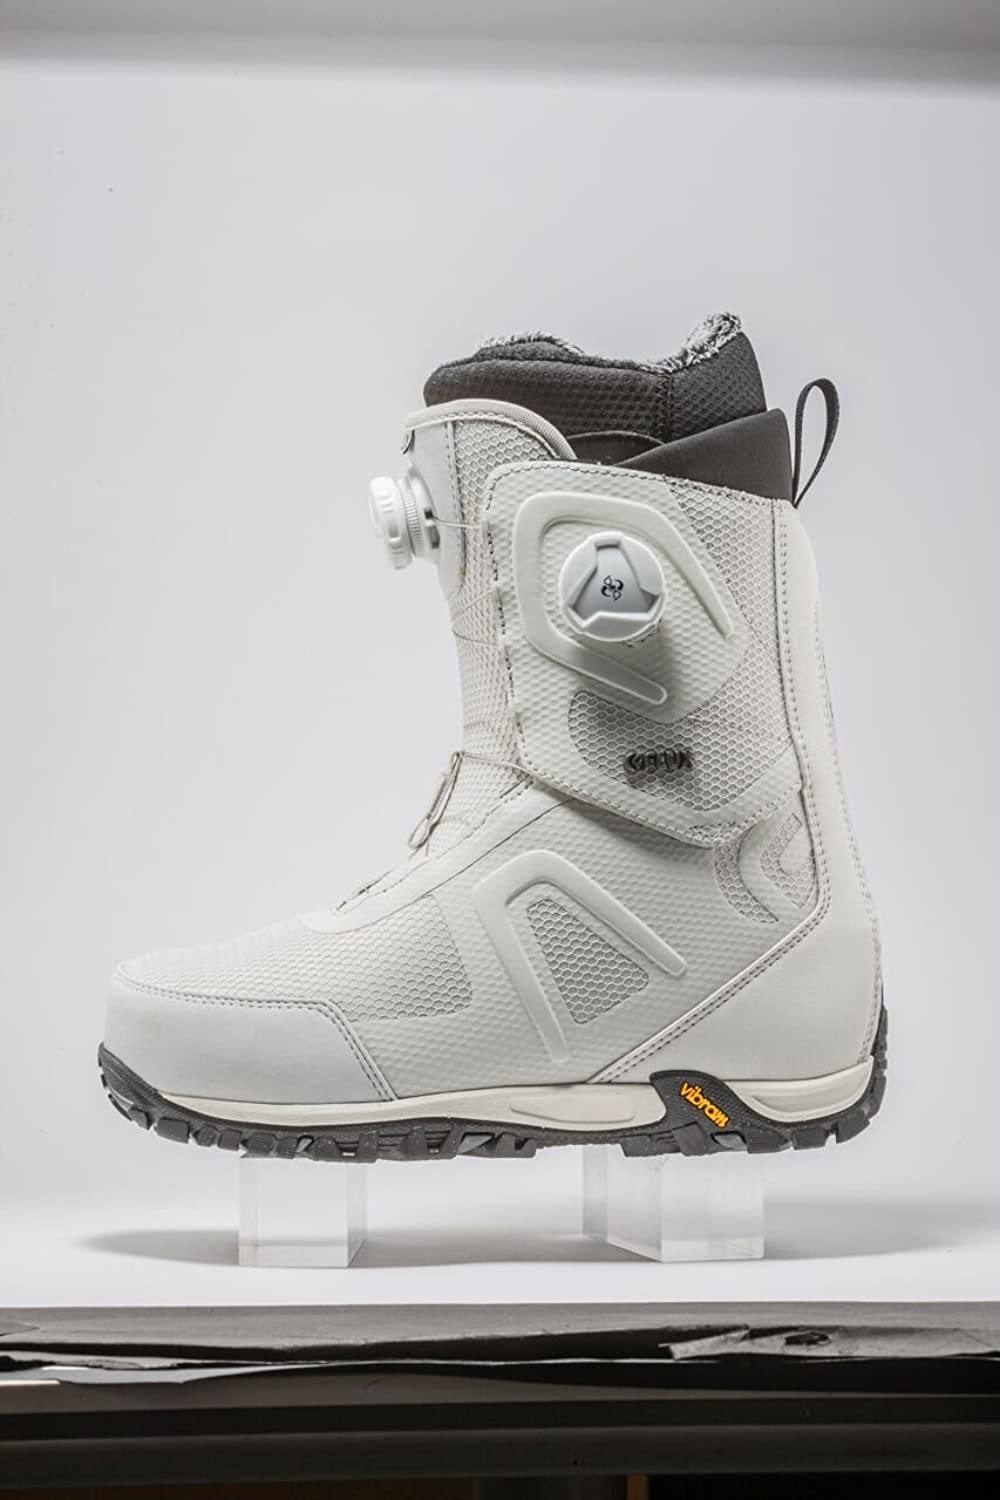 Flux 2018 19 Snowboard Boots Size White, 7.5